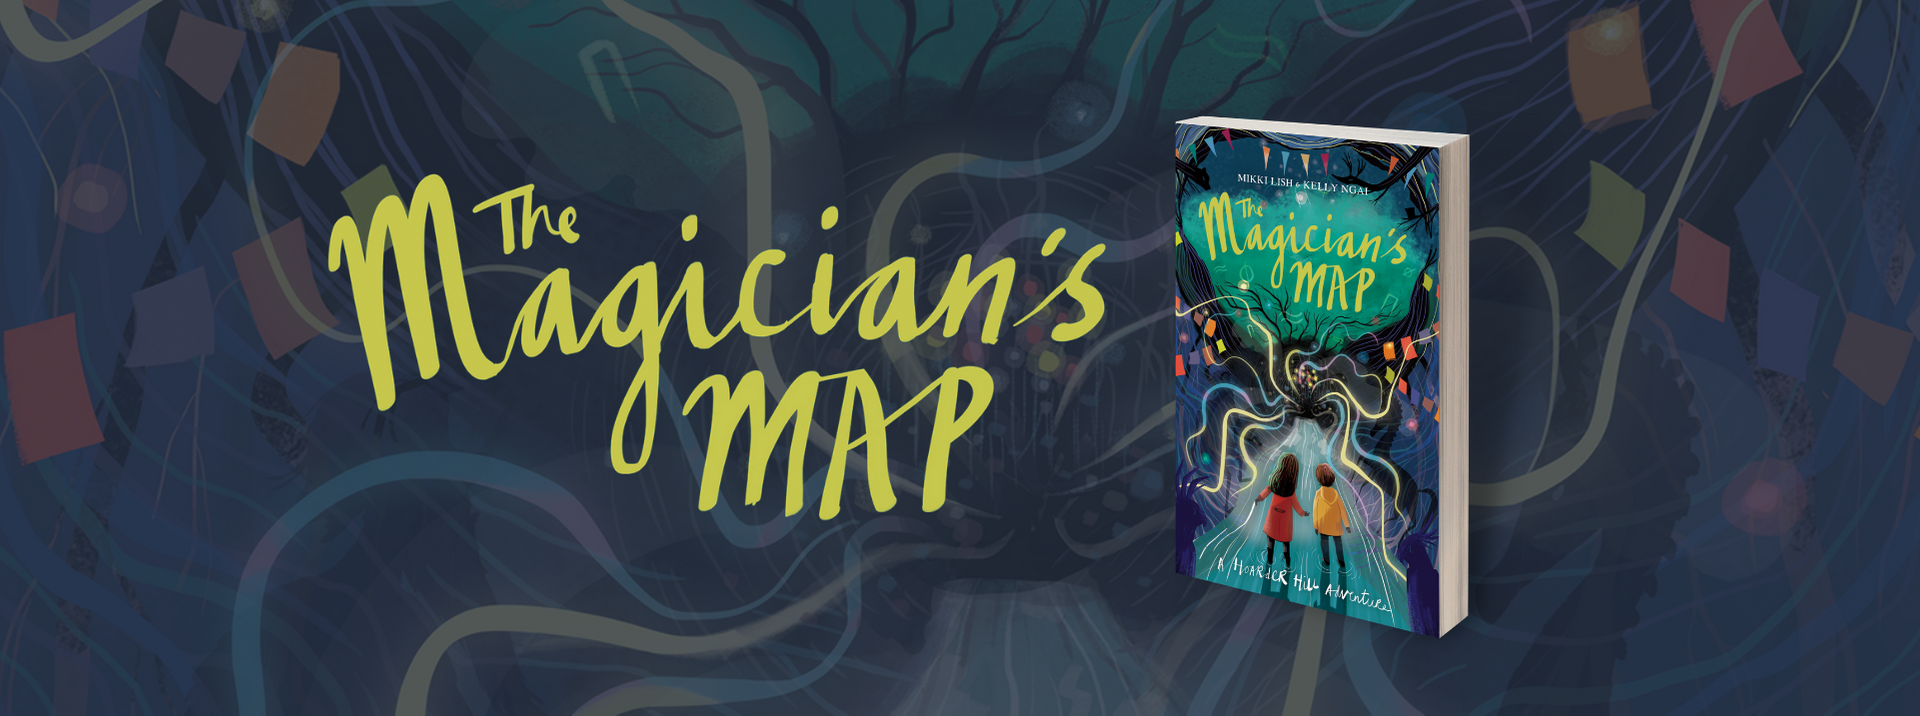 THE MAGICIAN'S MAP by Mikki Lish & Kelly Ngai